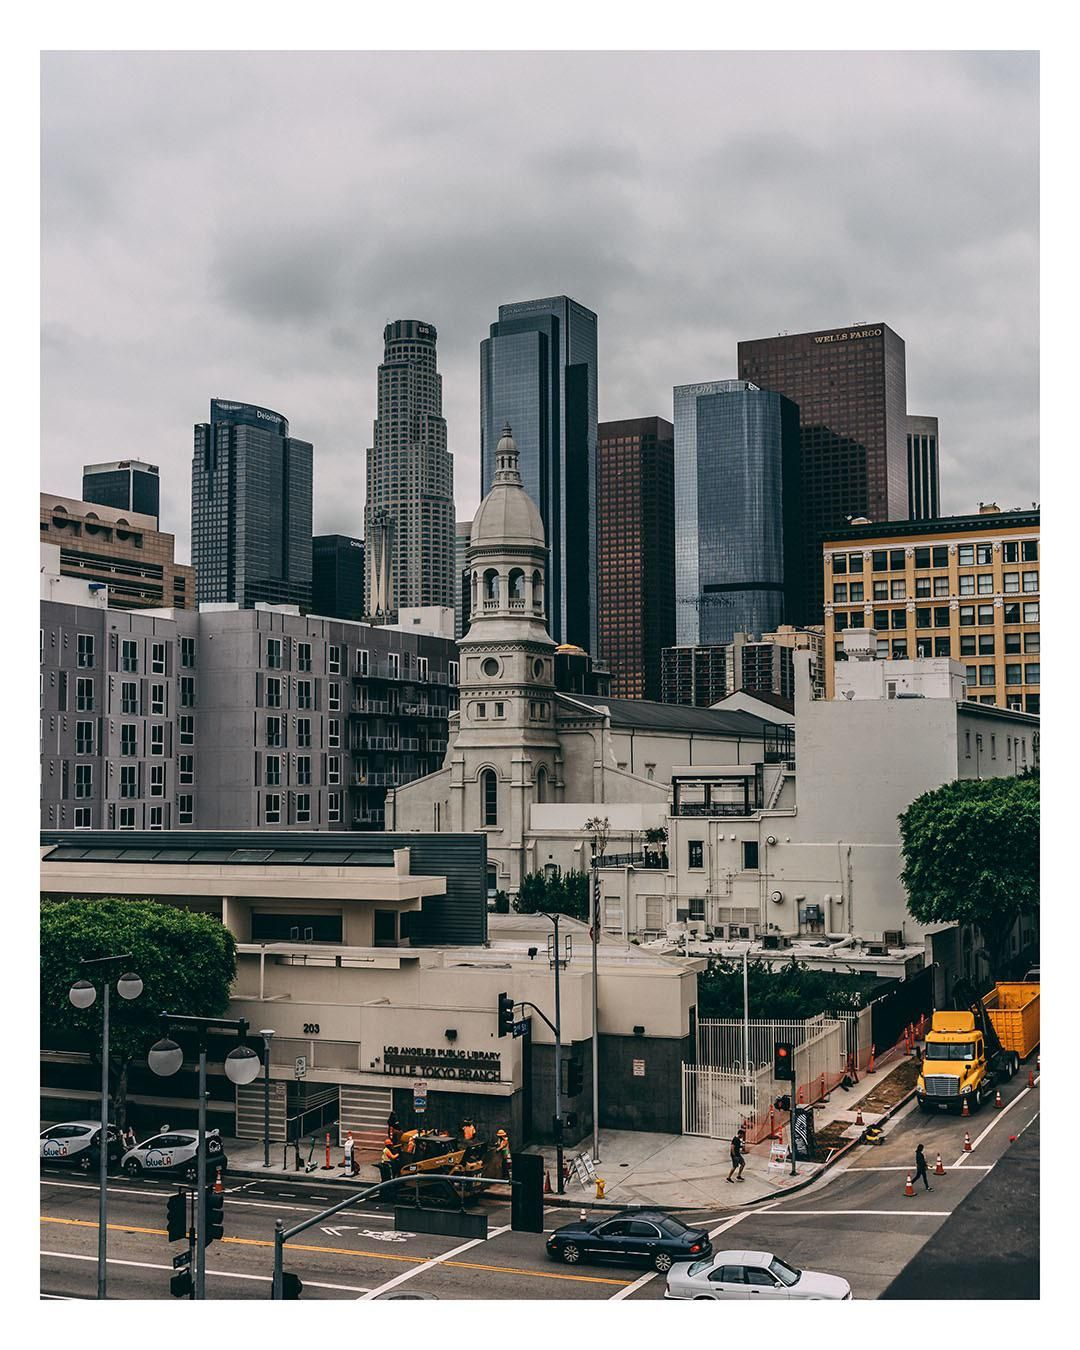 Dtla On A Cloudy Day Oc City Cities Buildings Photography Cloudy Day City Aesthetic Cloudy